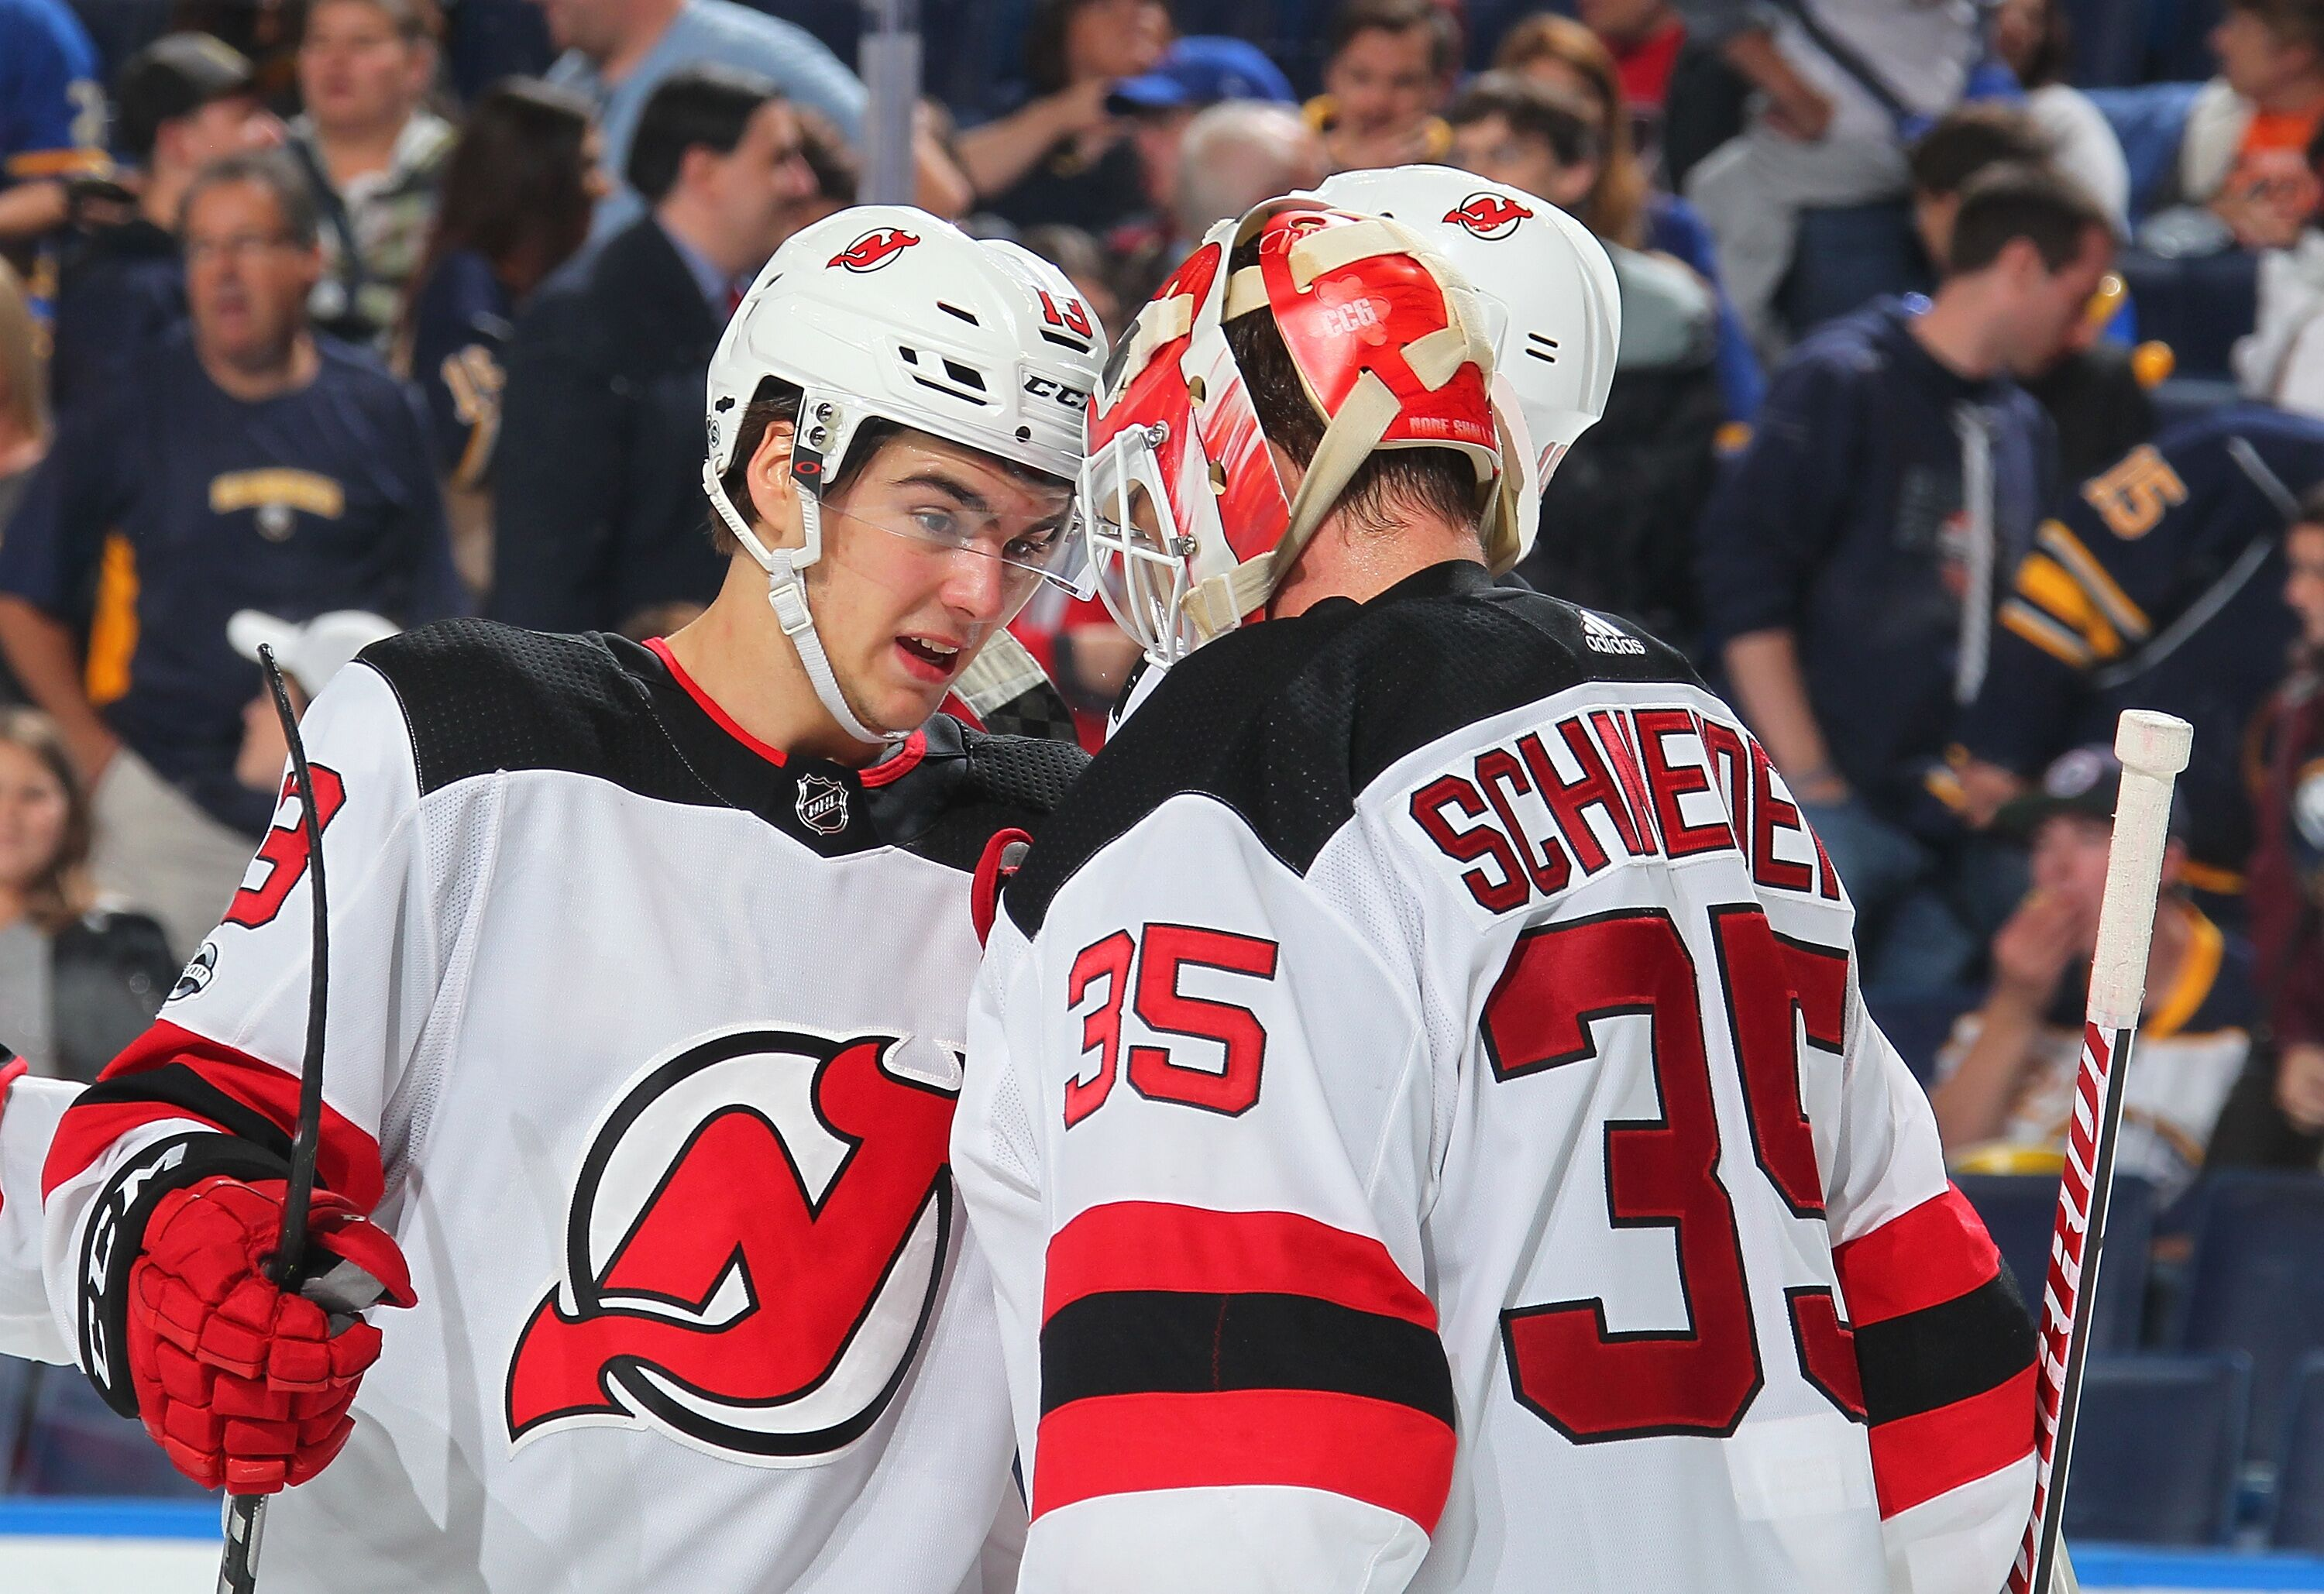 brand new 613d0 b92b1 New Jersey Devils Face Major Test Against Maple Leafs